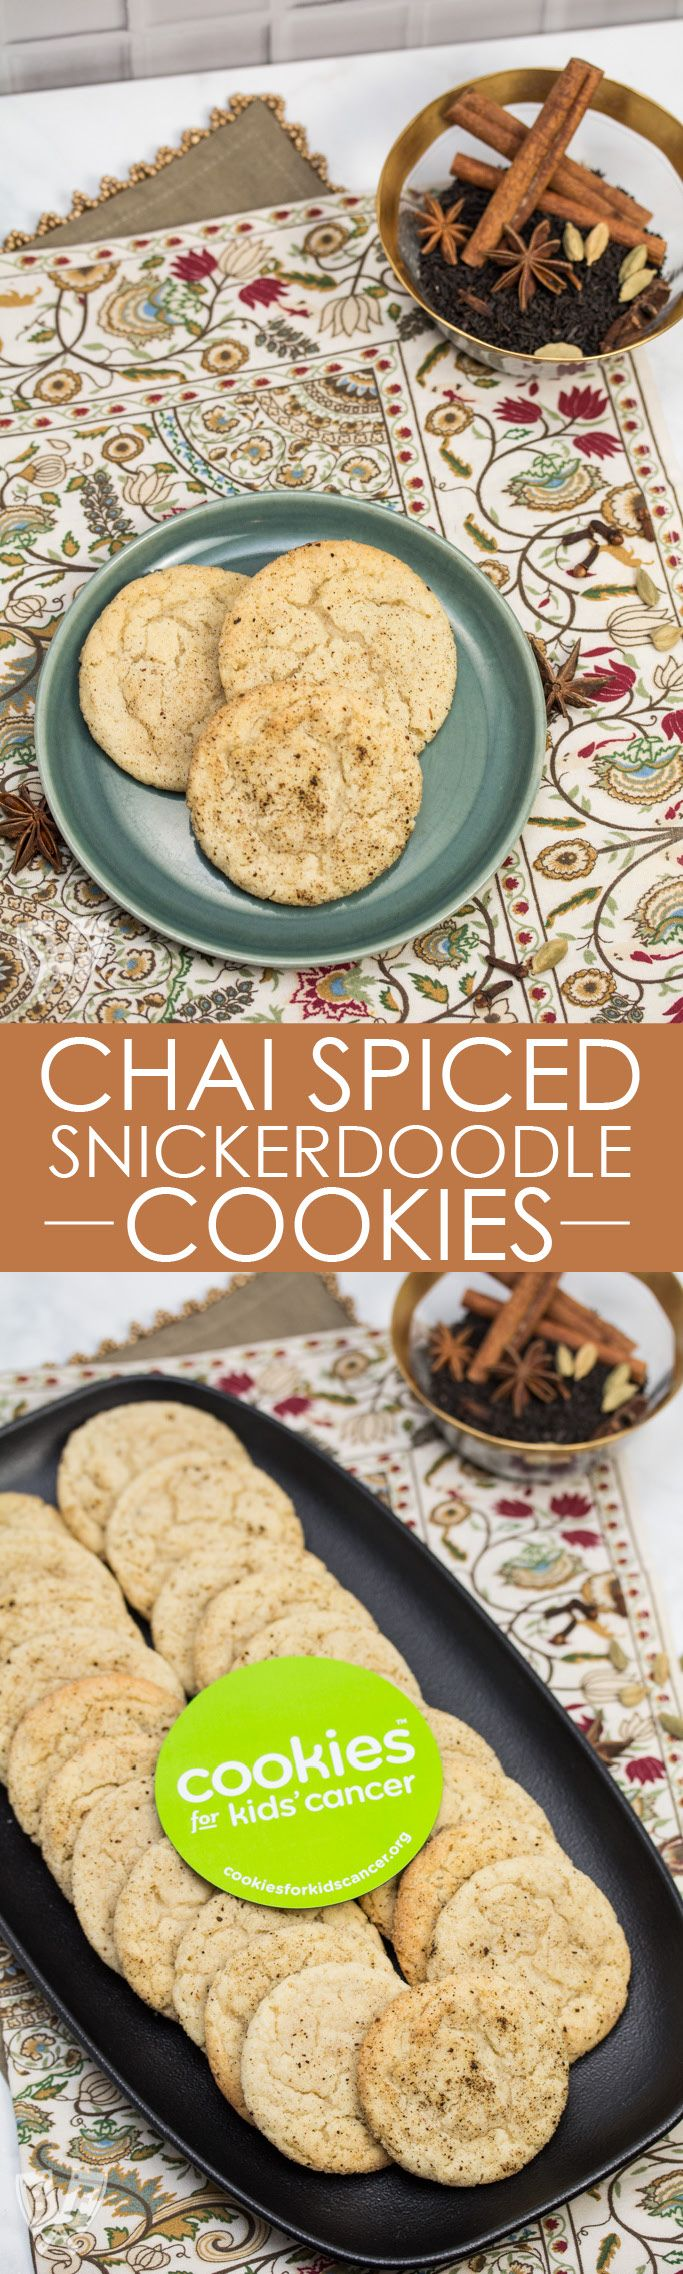 Do you like tea with your cookies? How about tea IN your cookies? Freshly toasted spices are ground and incorporated in and around these soft, fragrant cookies, giving Indian flair to a dessert classic. | Chai Spiced Snickerdoodle Cookies - a Fragrant Spin on a Classic Dessert | #baking #dessert #cookies #snickerdoodles #chai #spiced #sweettooth #helpingcookies